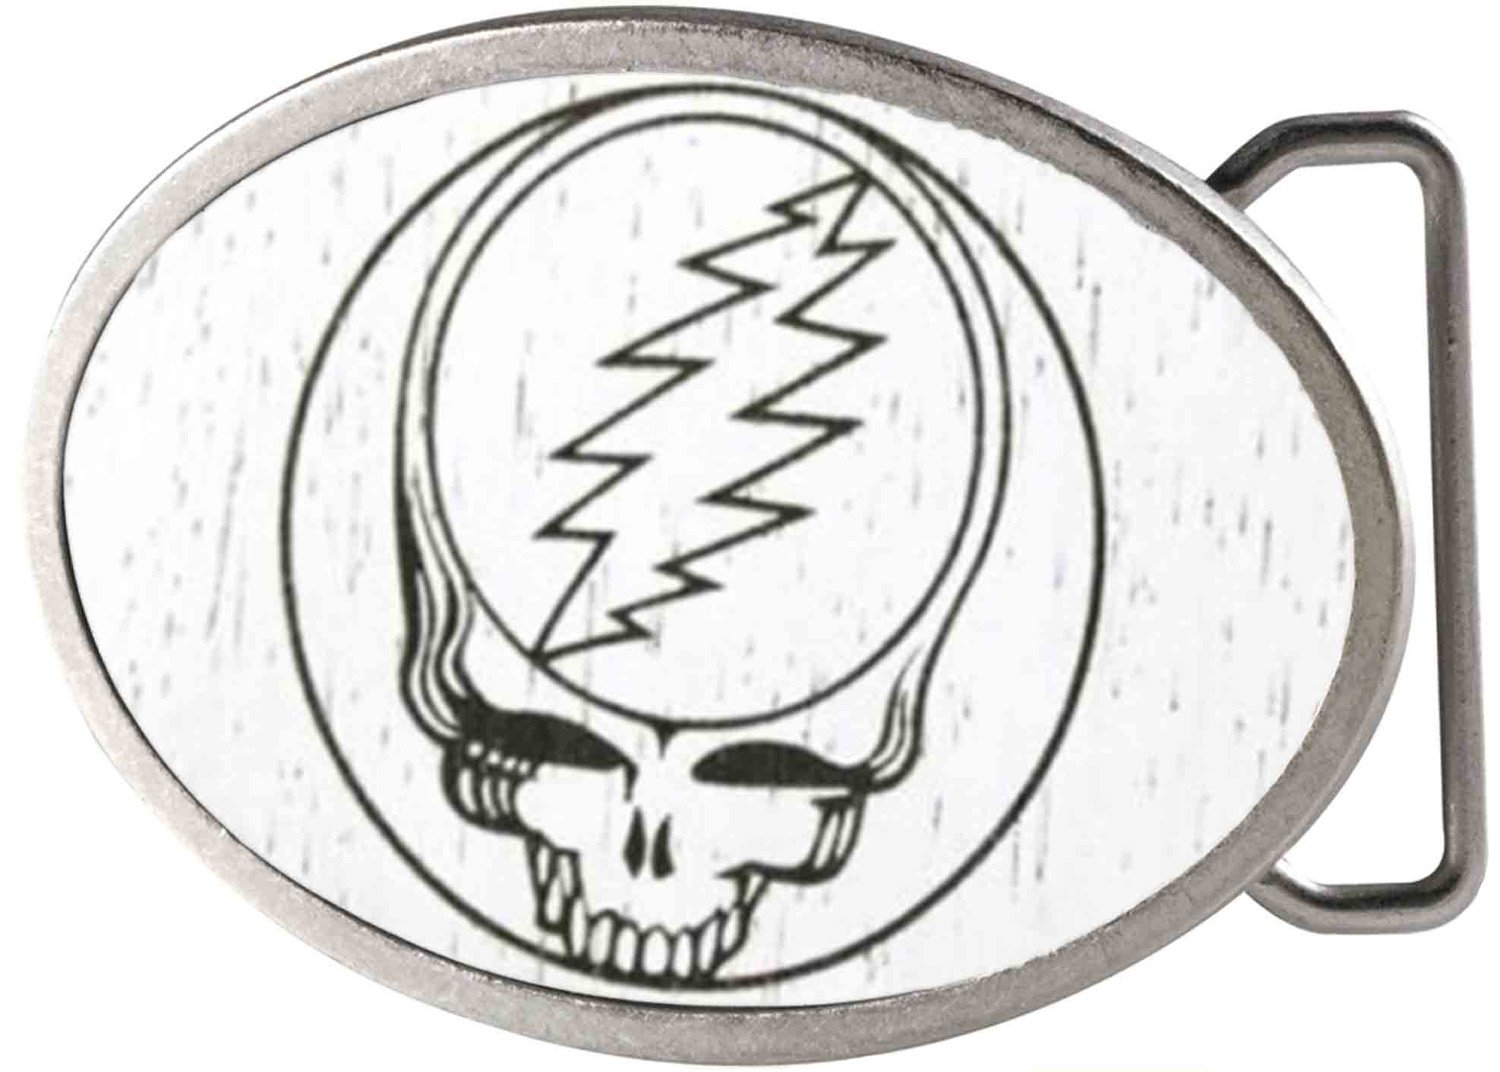 Grateful Dead Psychedelic Rock Band Lightning Bolt Skull Rockstar Belt Buckle Buckle Down